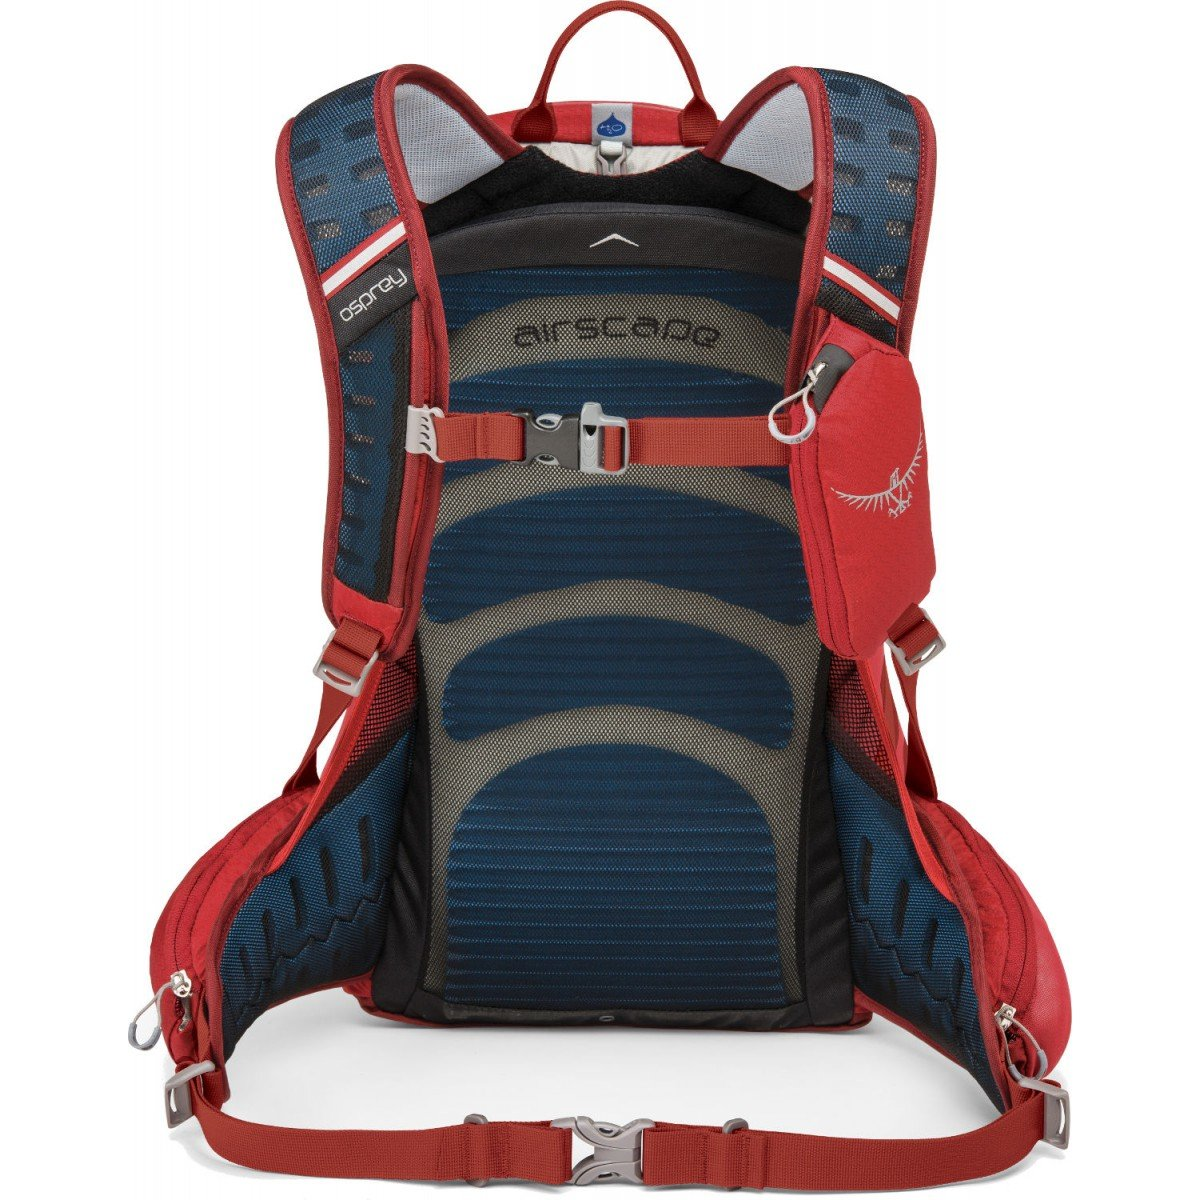 Рюкзак Osprey Escapist 25 Cayenne Red Daylite Plus 20 3 009.0272